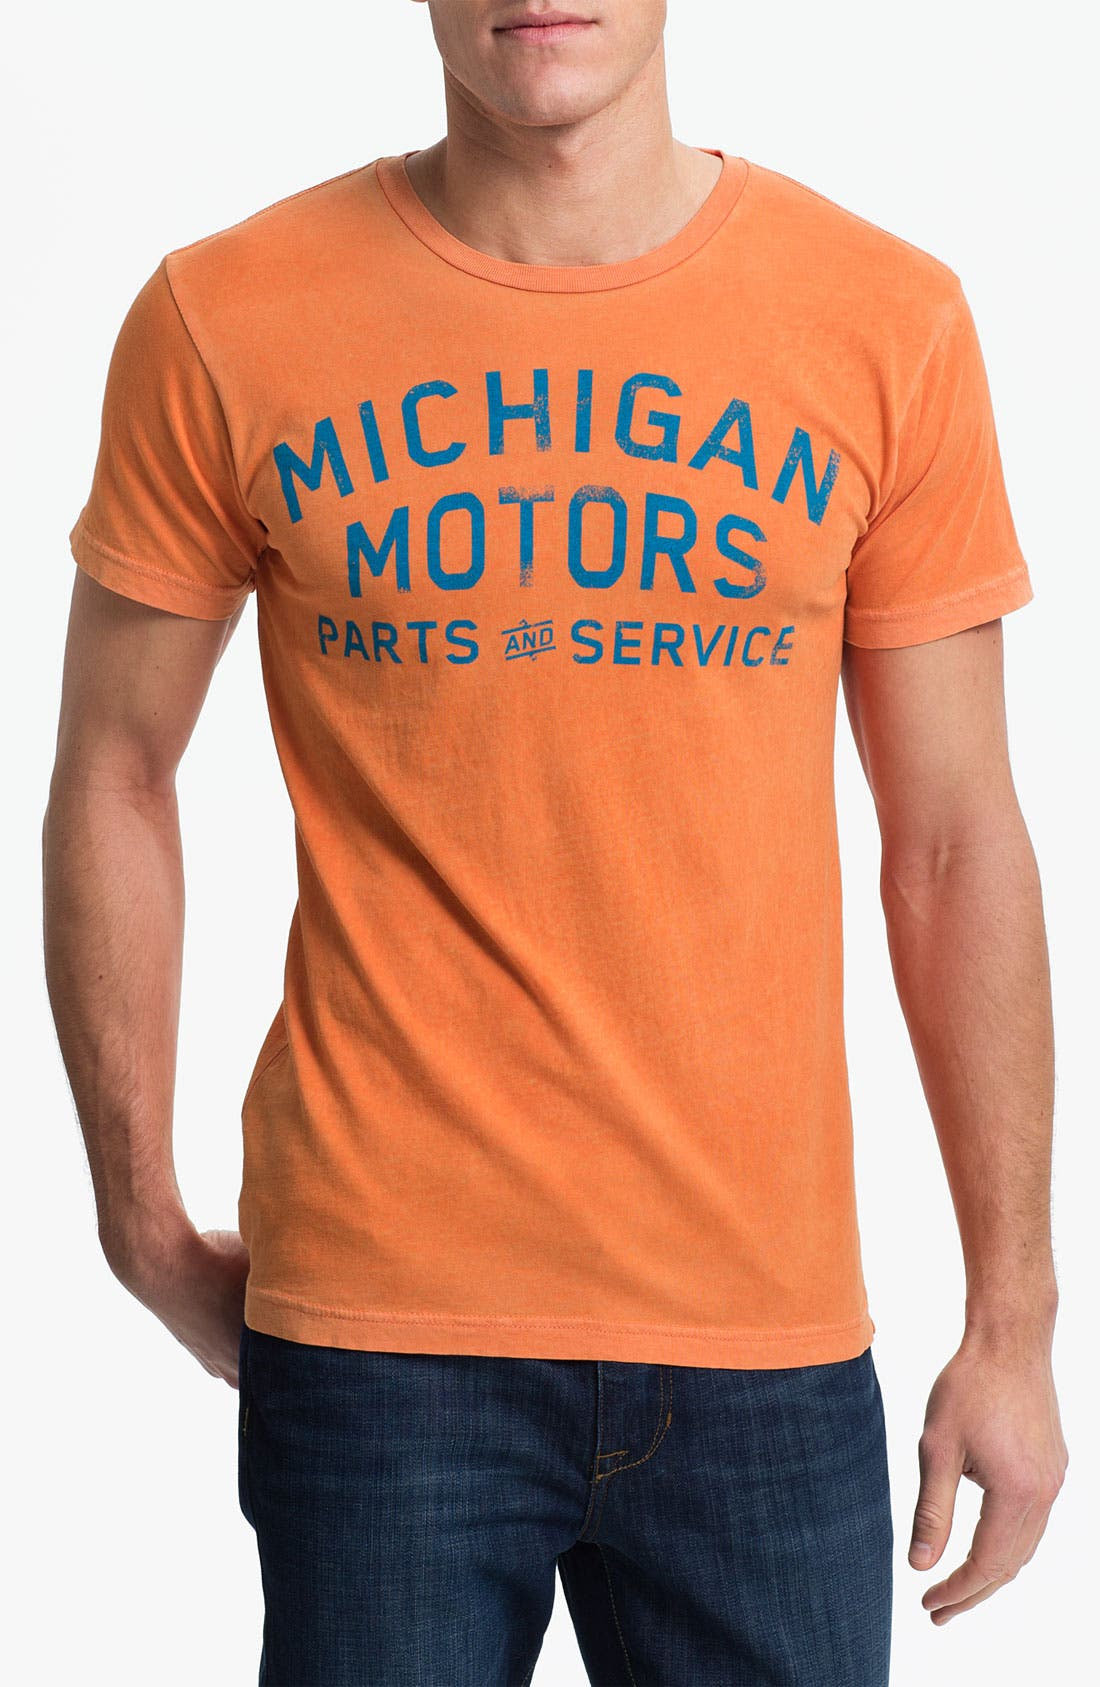 Main Image - Denim & Leathers by Andrew Marc 'Michigan Motors' Graphic T-Shirt